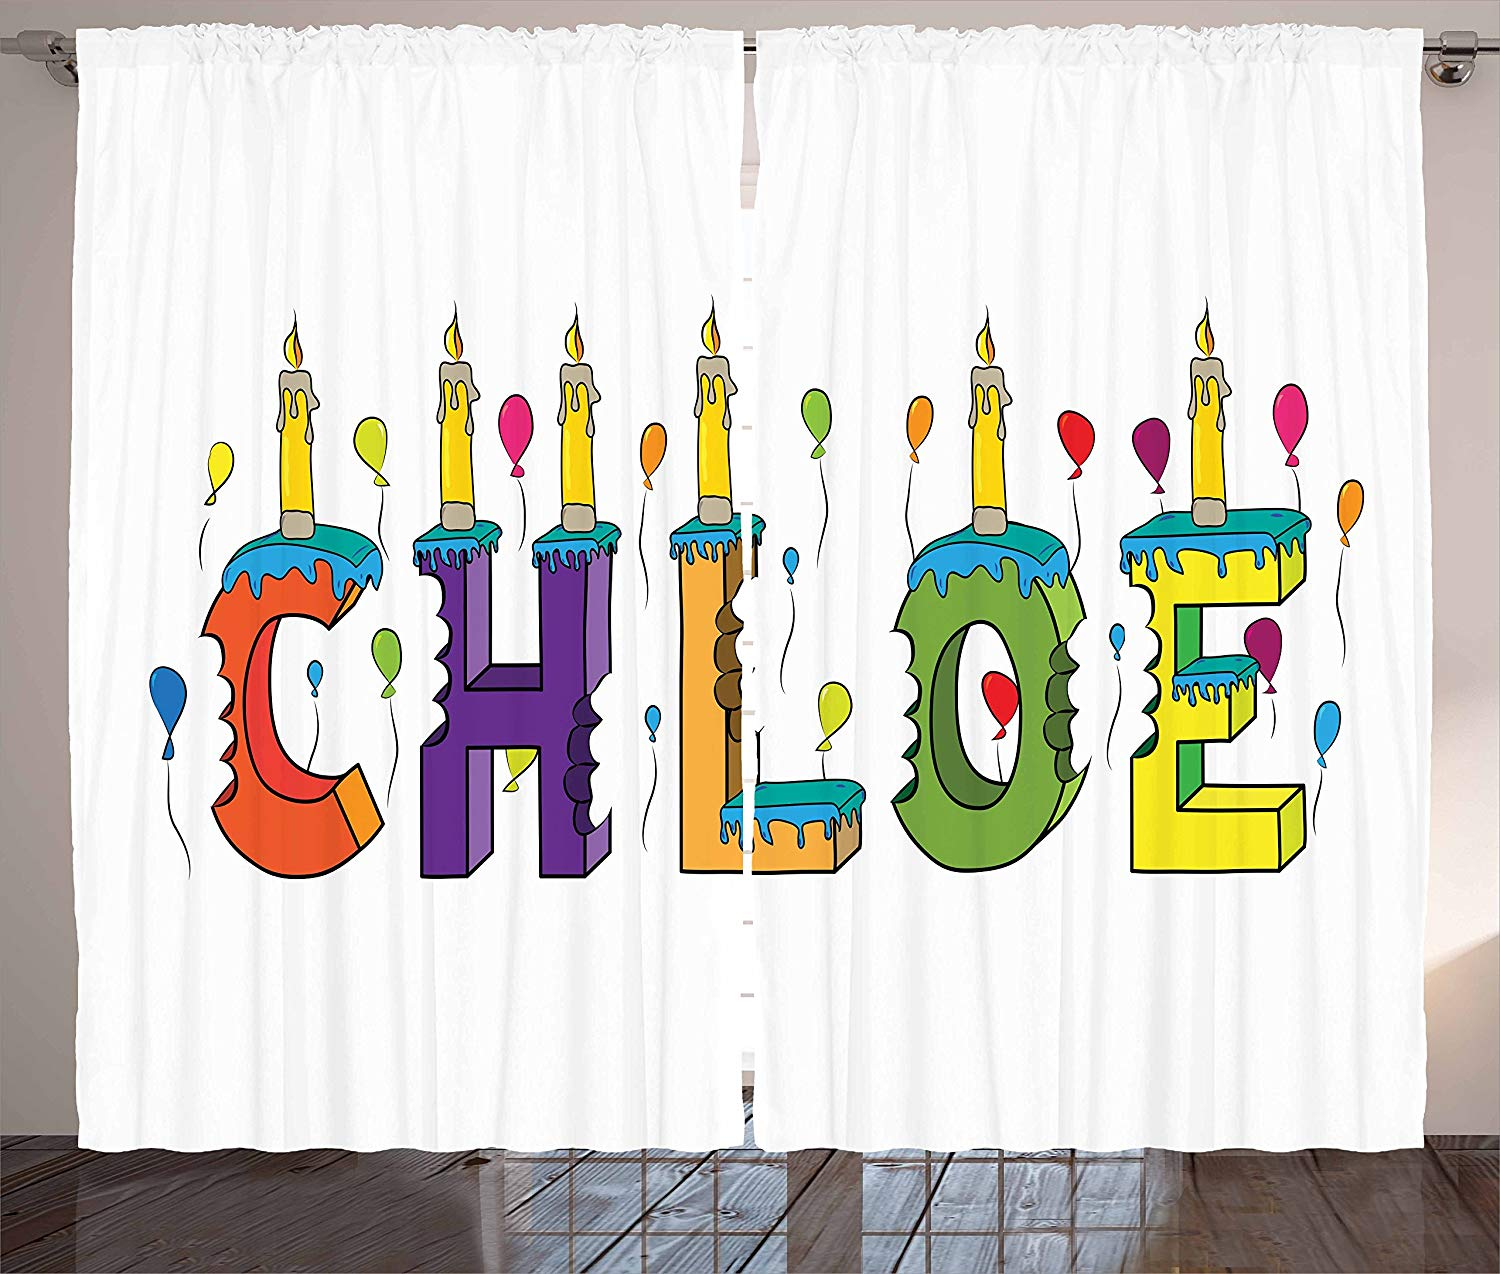 Chloe Curtains Lettering With Cheerful Bitten Cake Candles Girly Birthday Party Design First Name Living Room Bedroom Window